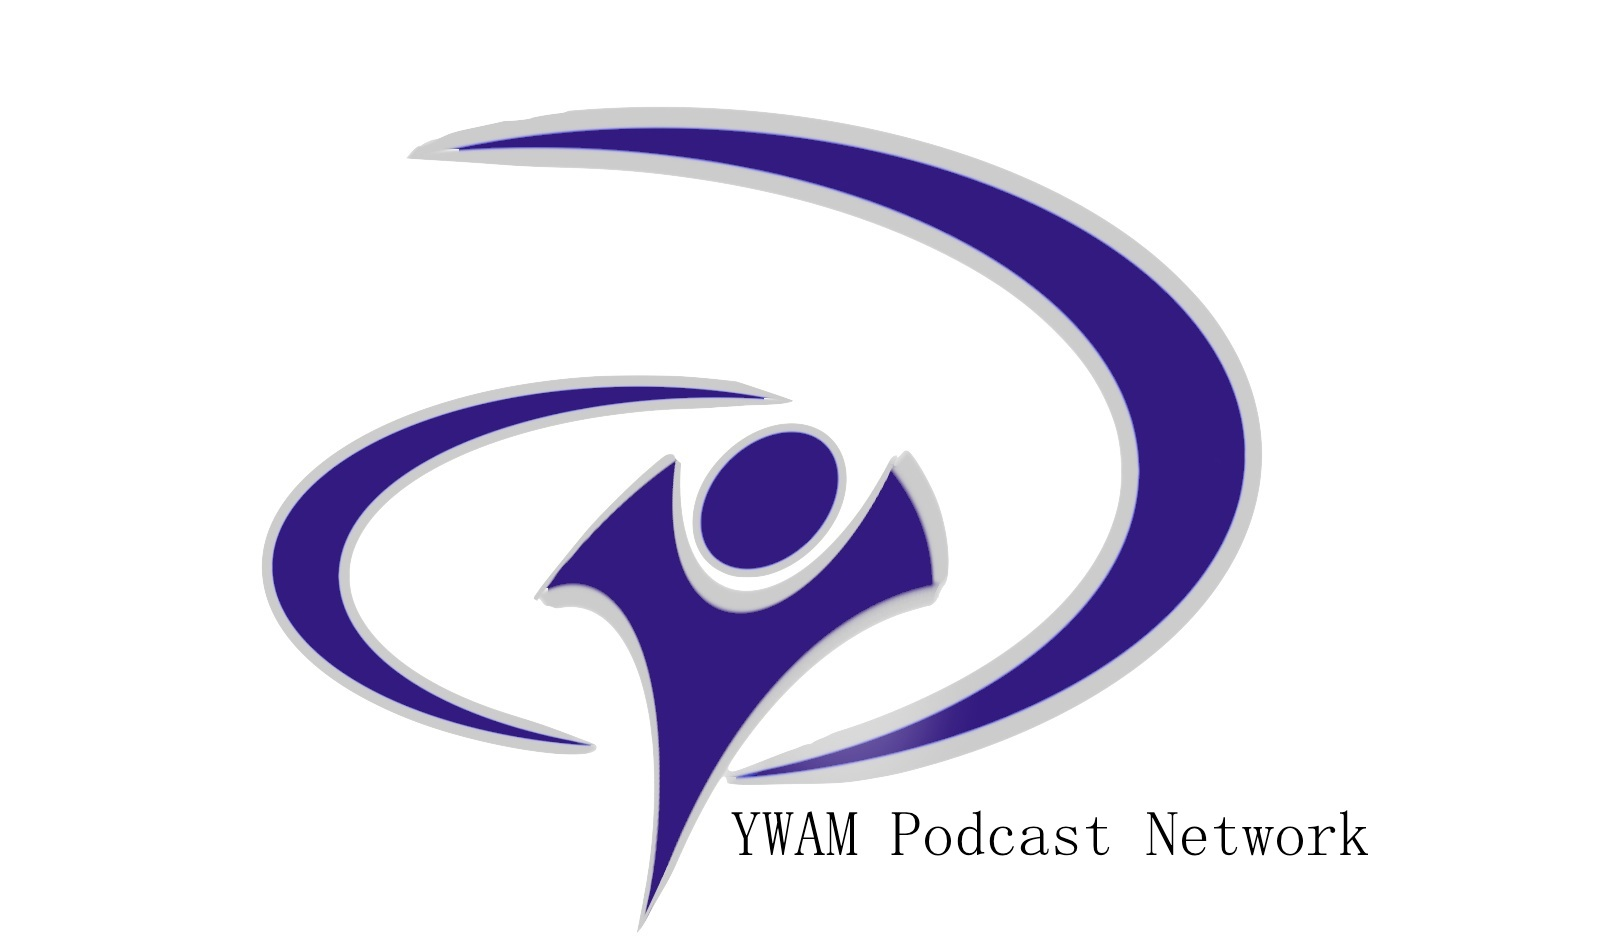 YWAM Podcast Network